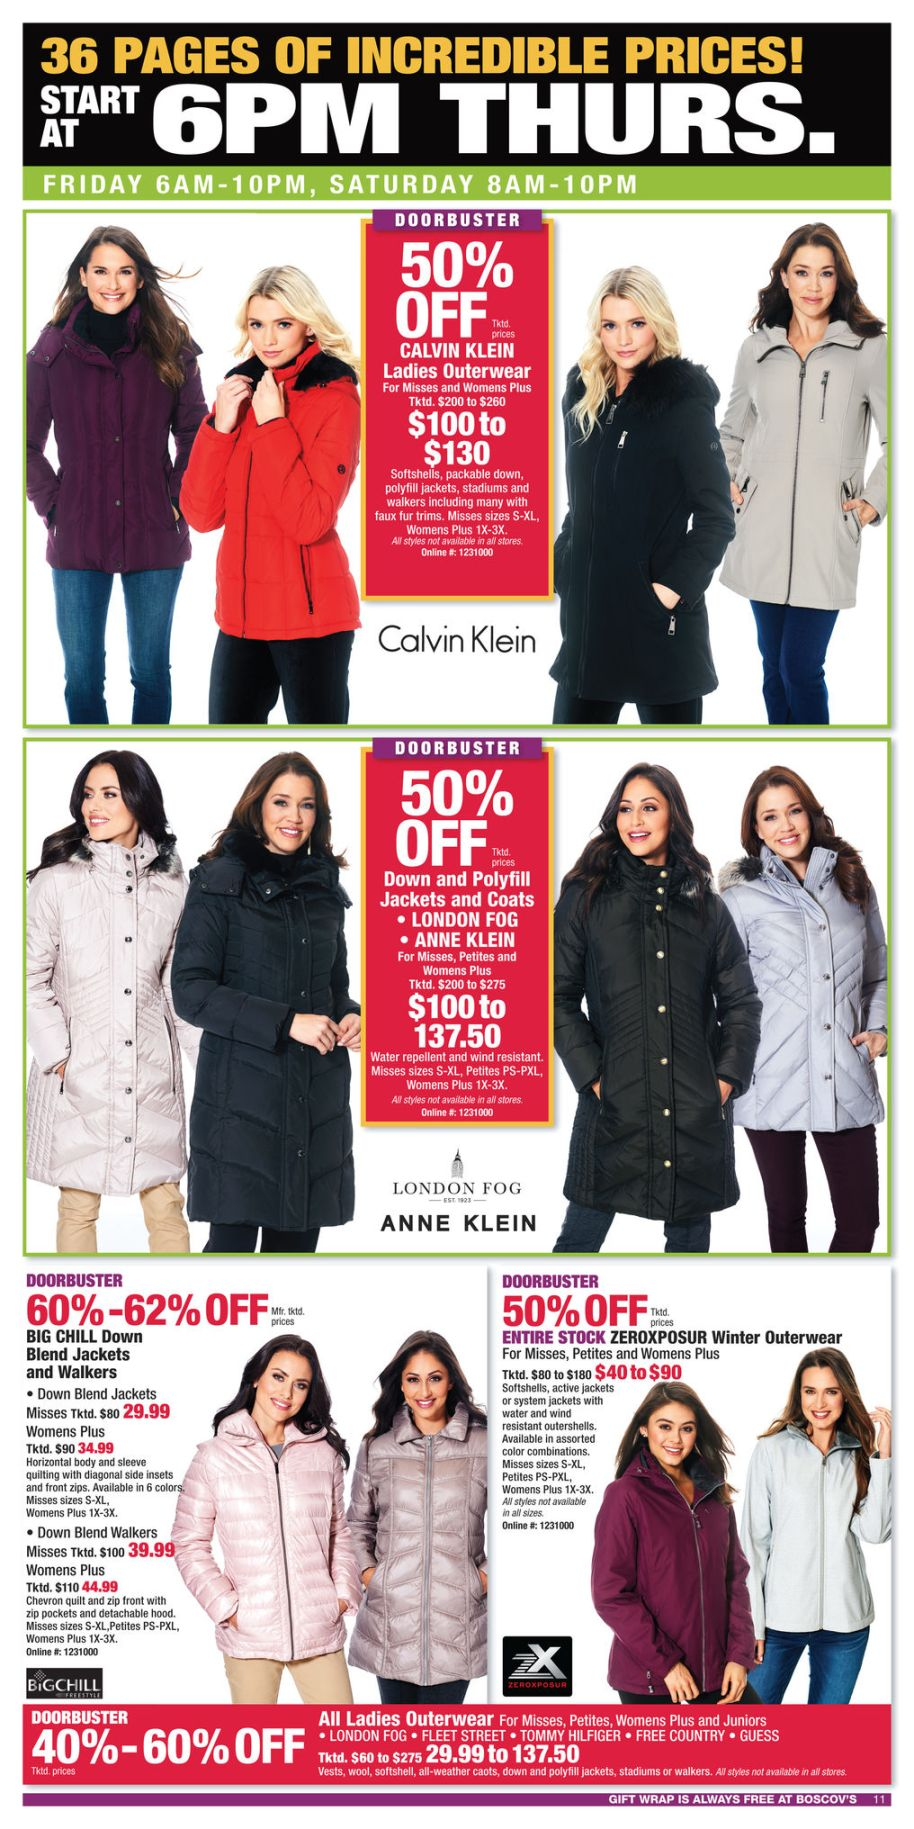 69a9d38a9 Similiar Coupons and Coupon Codes You Might Find Useful! eddie bauer black  friday